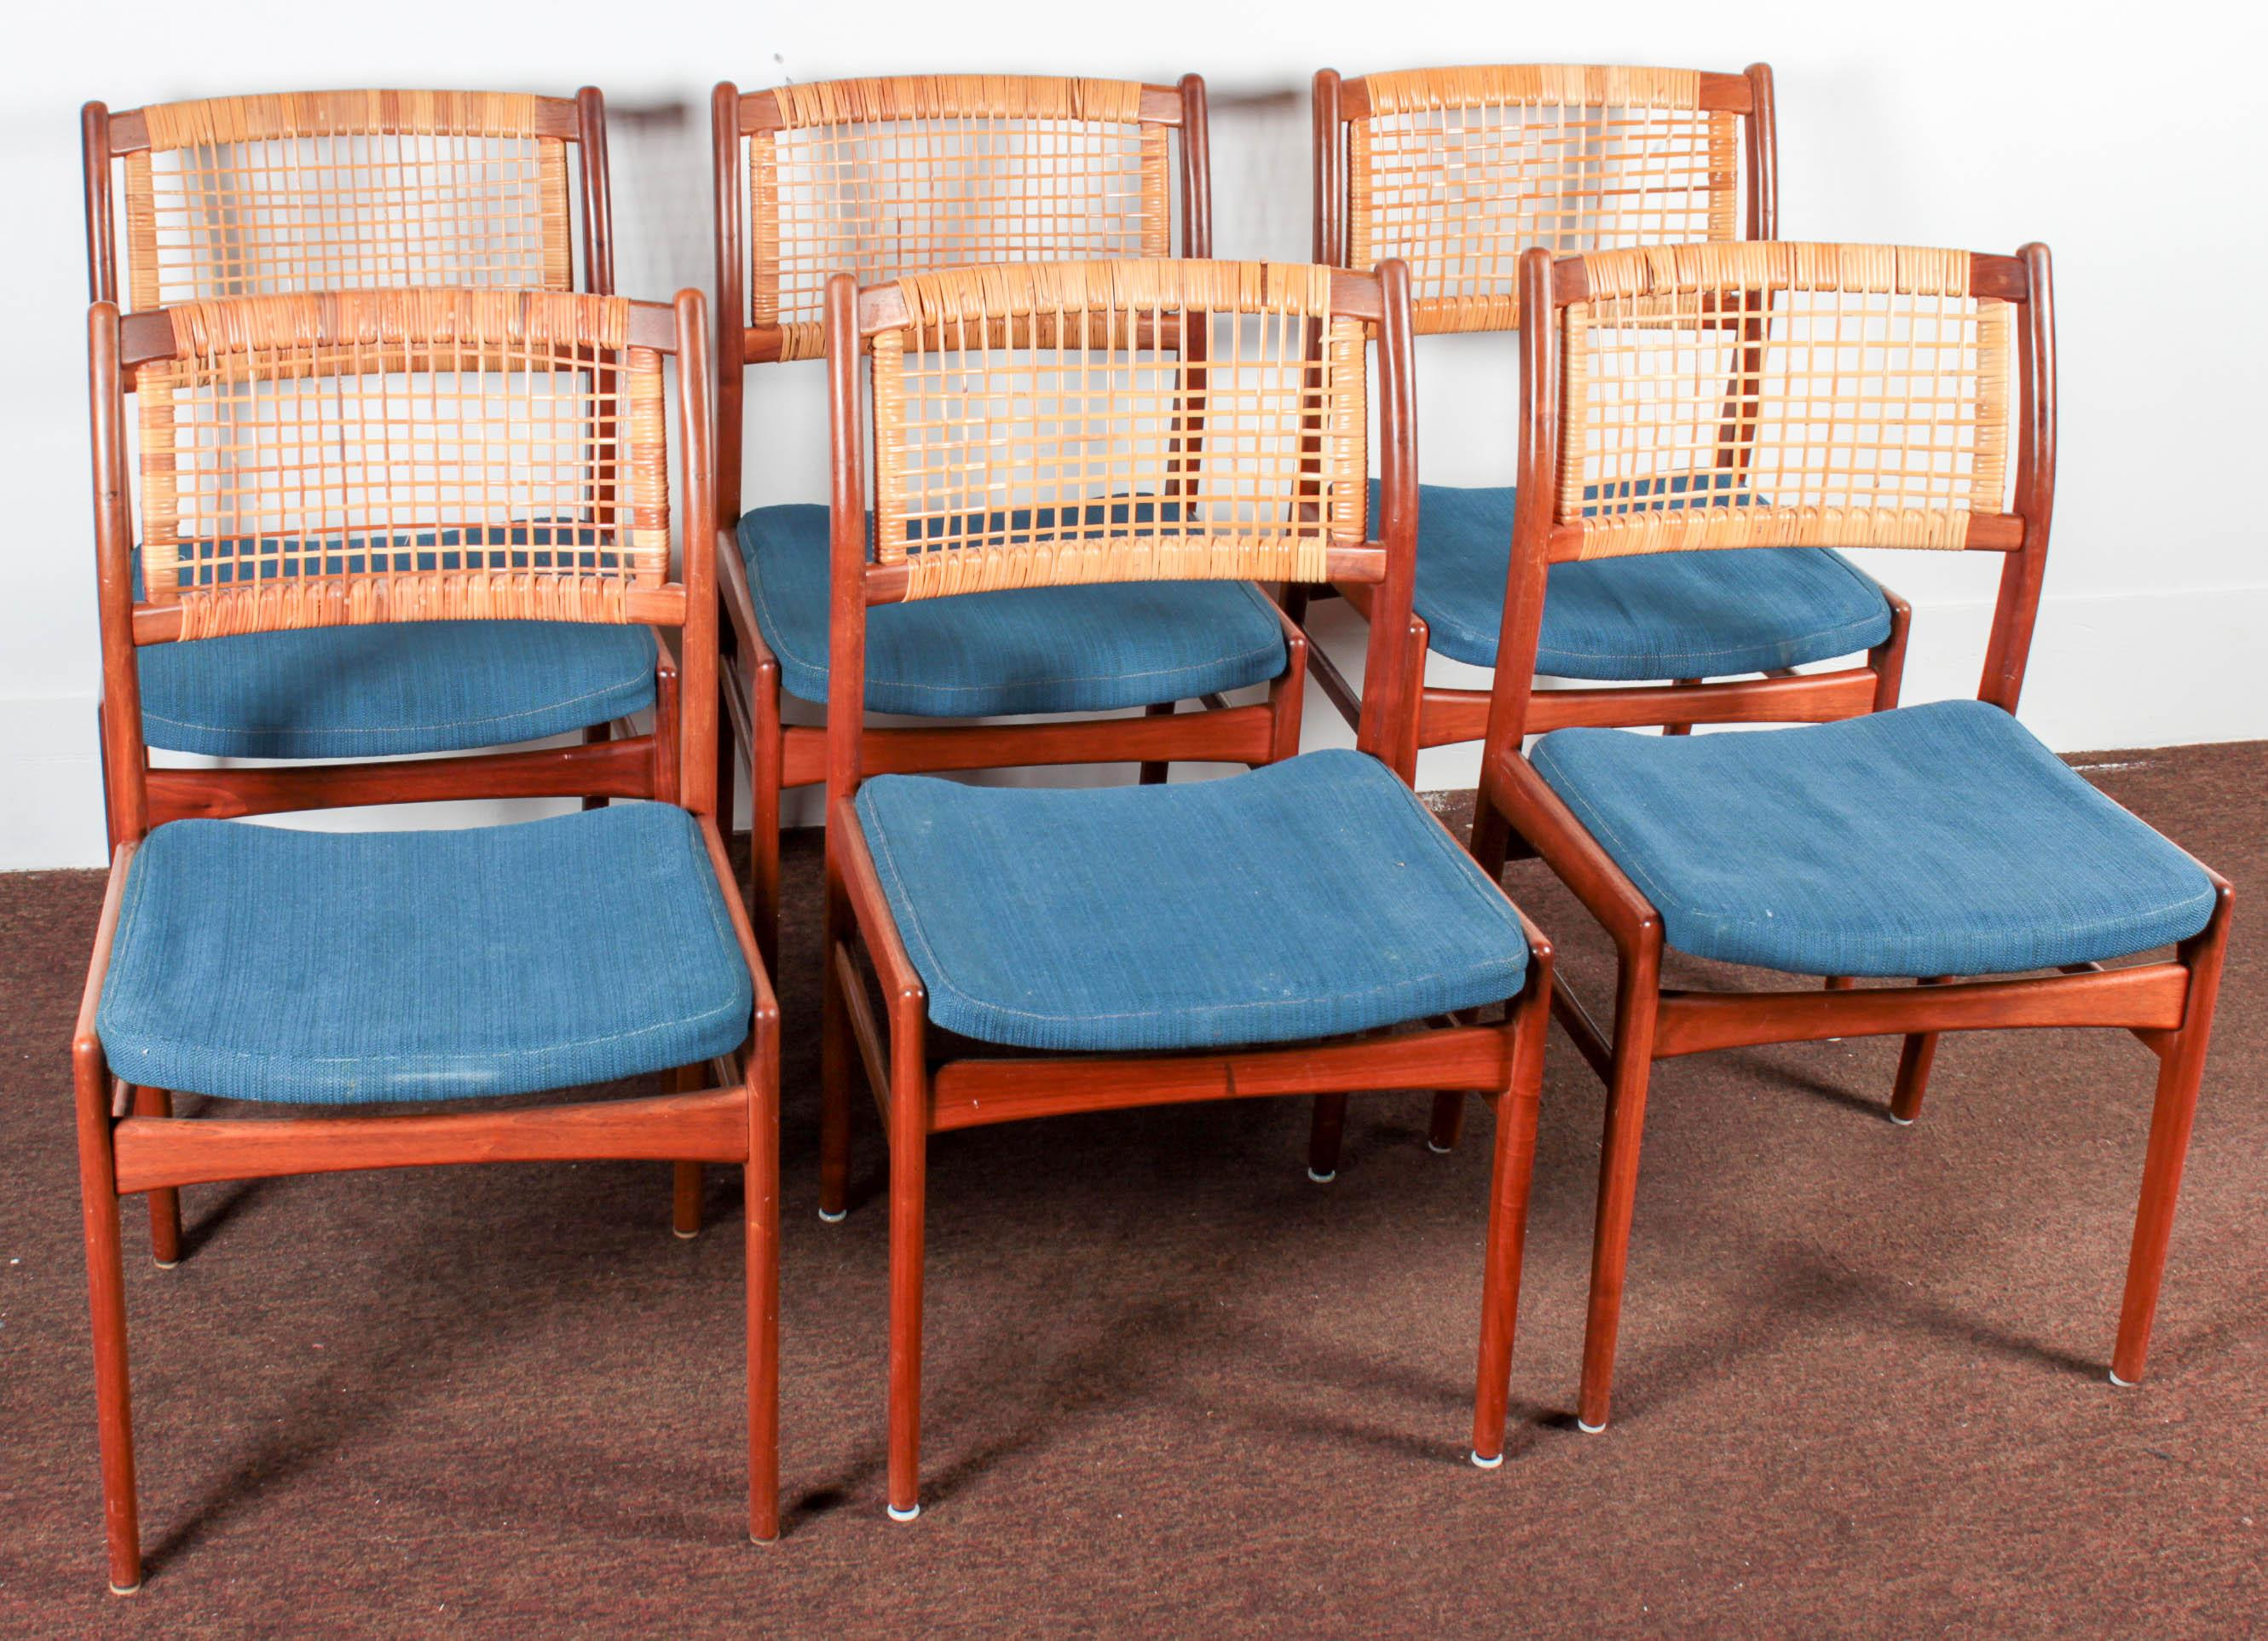 Refinish Rattan Dining Chairs